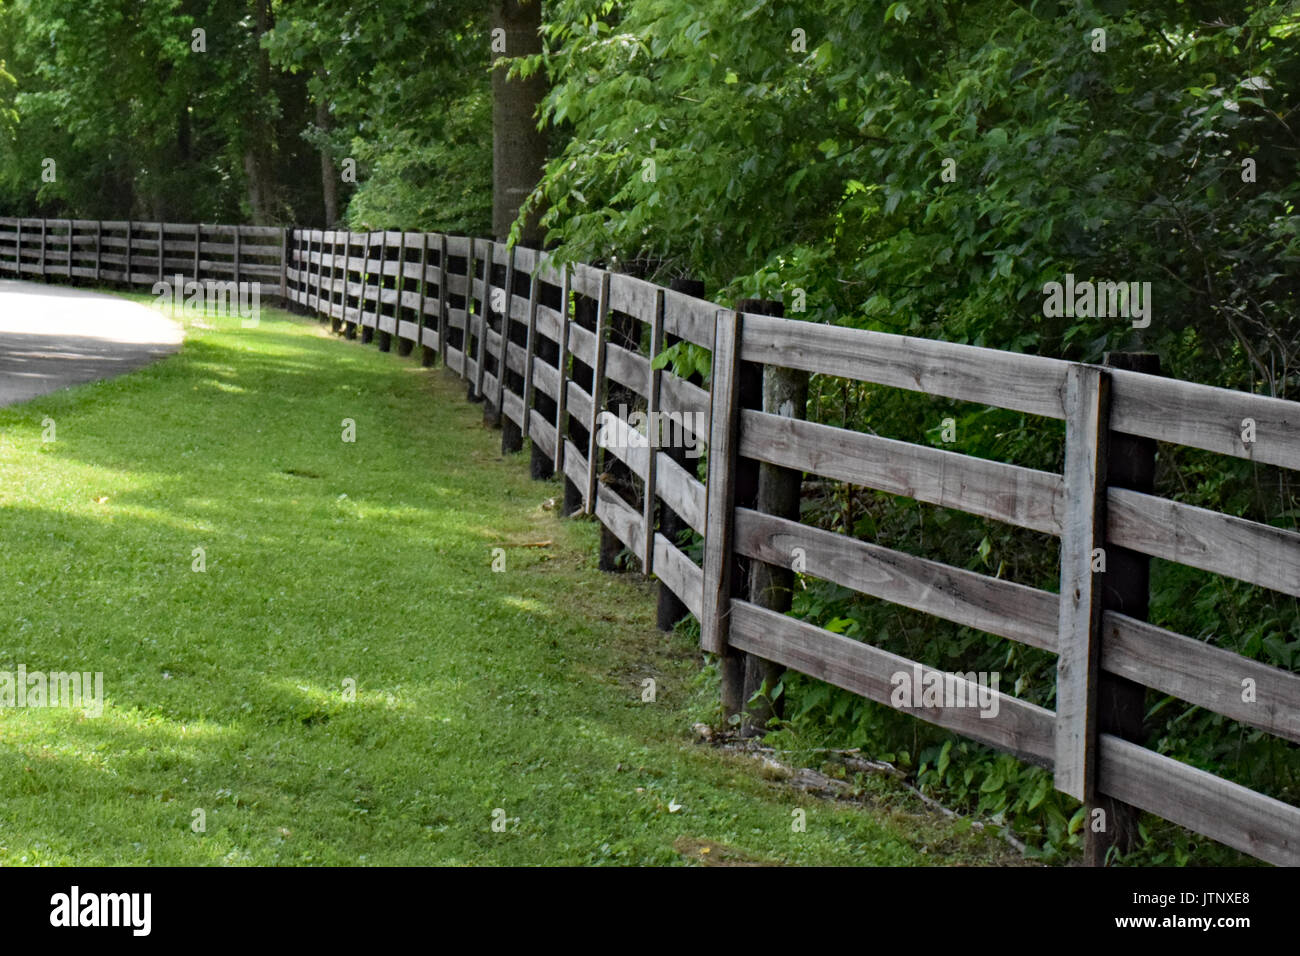 Old Wooden Fence - Stock Image